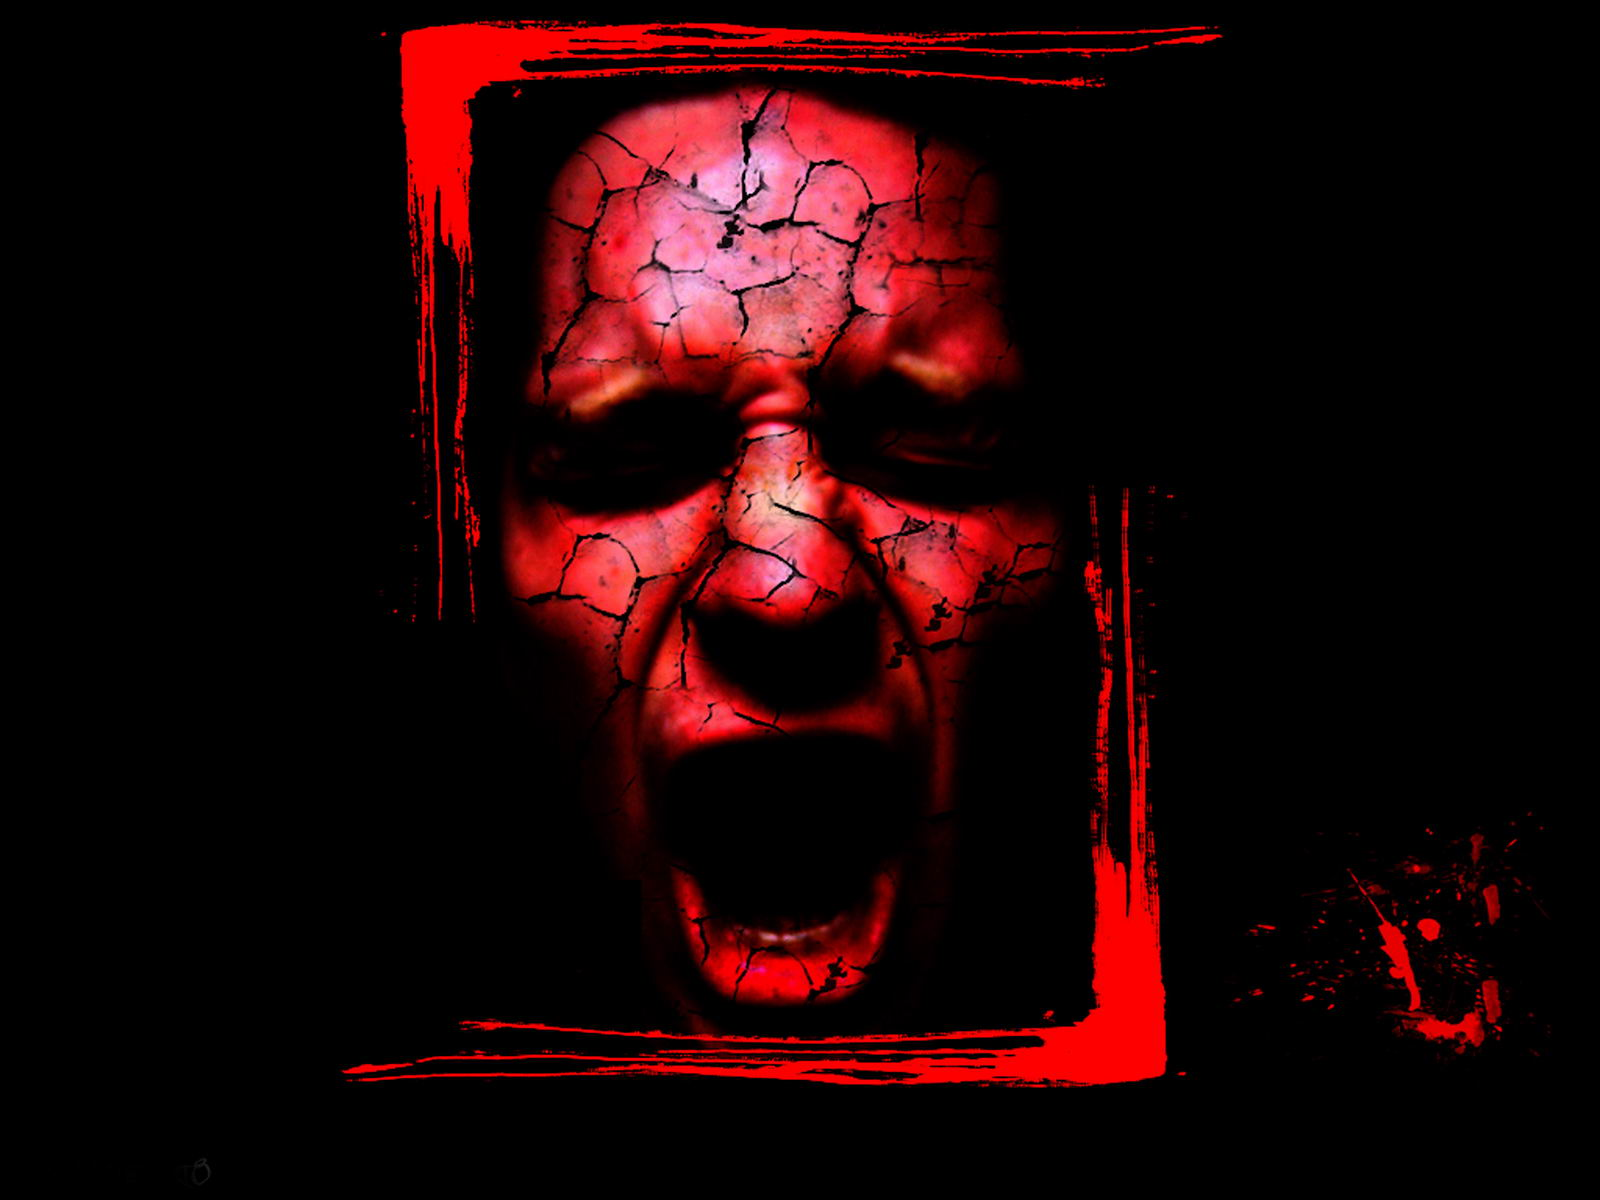 Scary wallpaper red grunge scary wallpaper